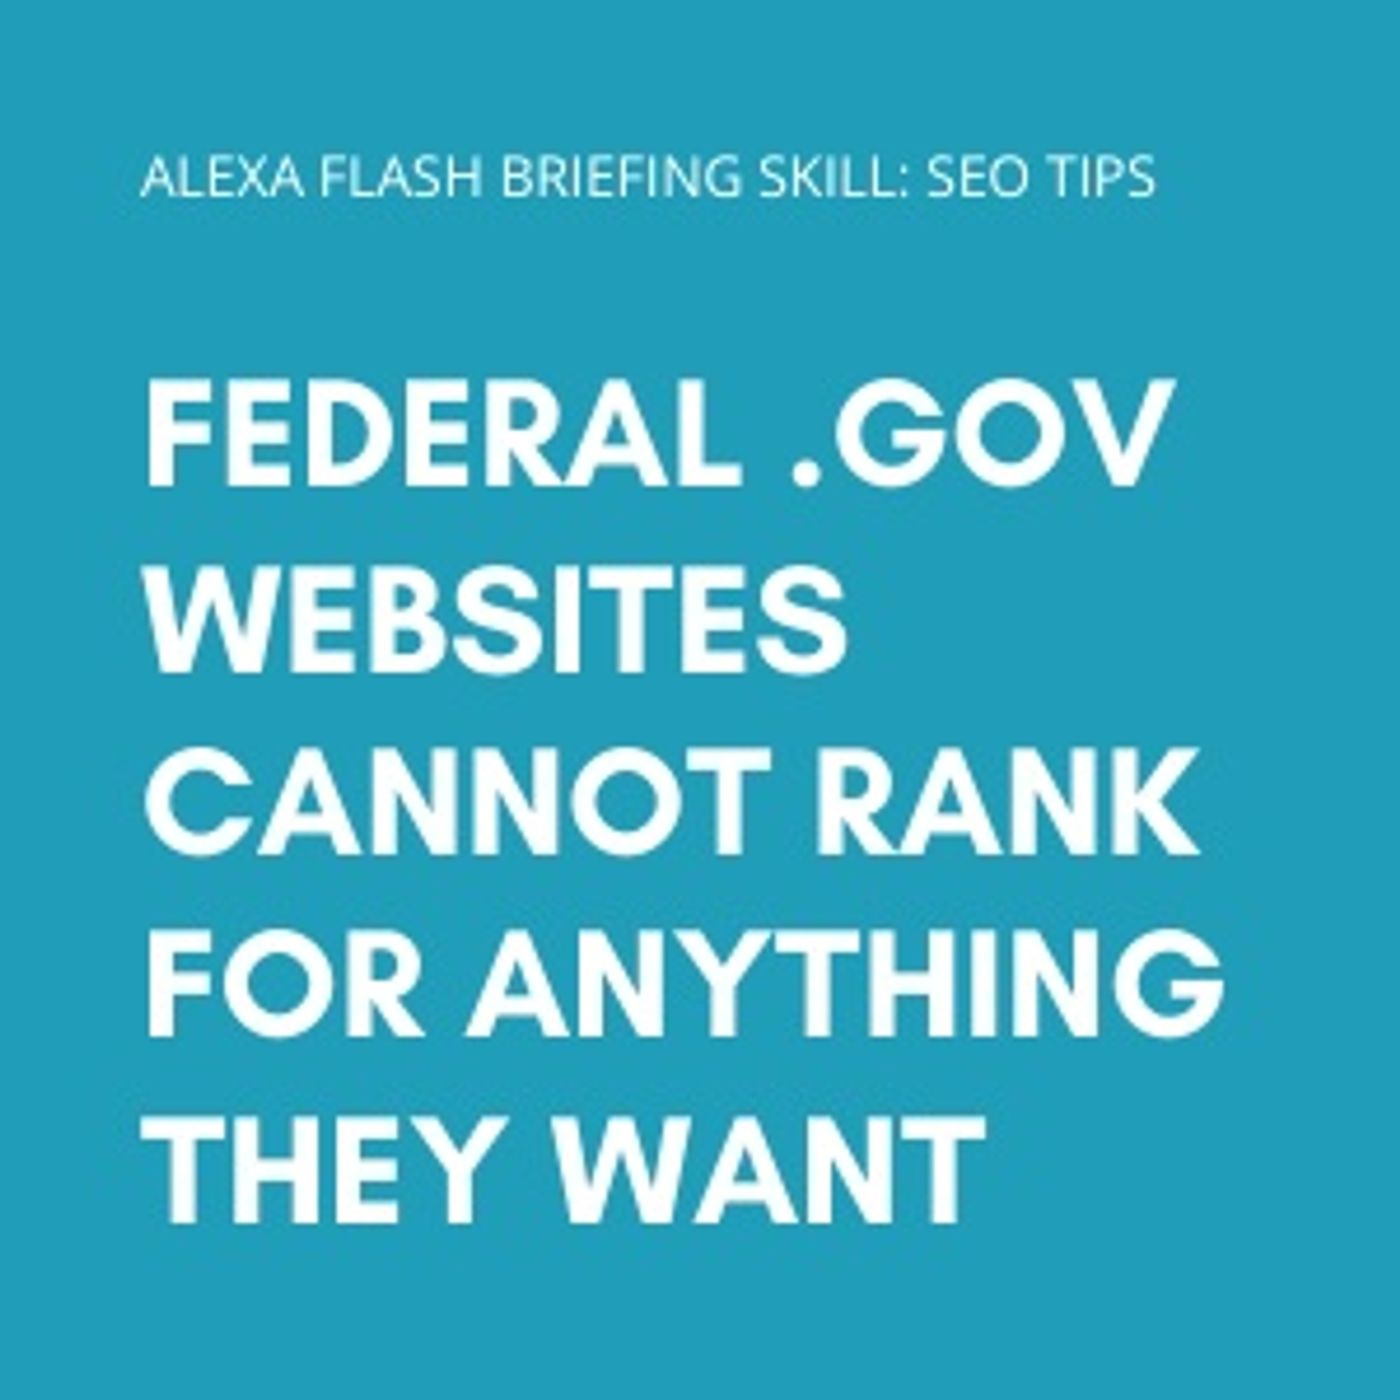 Federal .gov websites cannot rank for anything they want